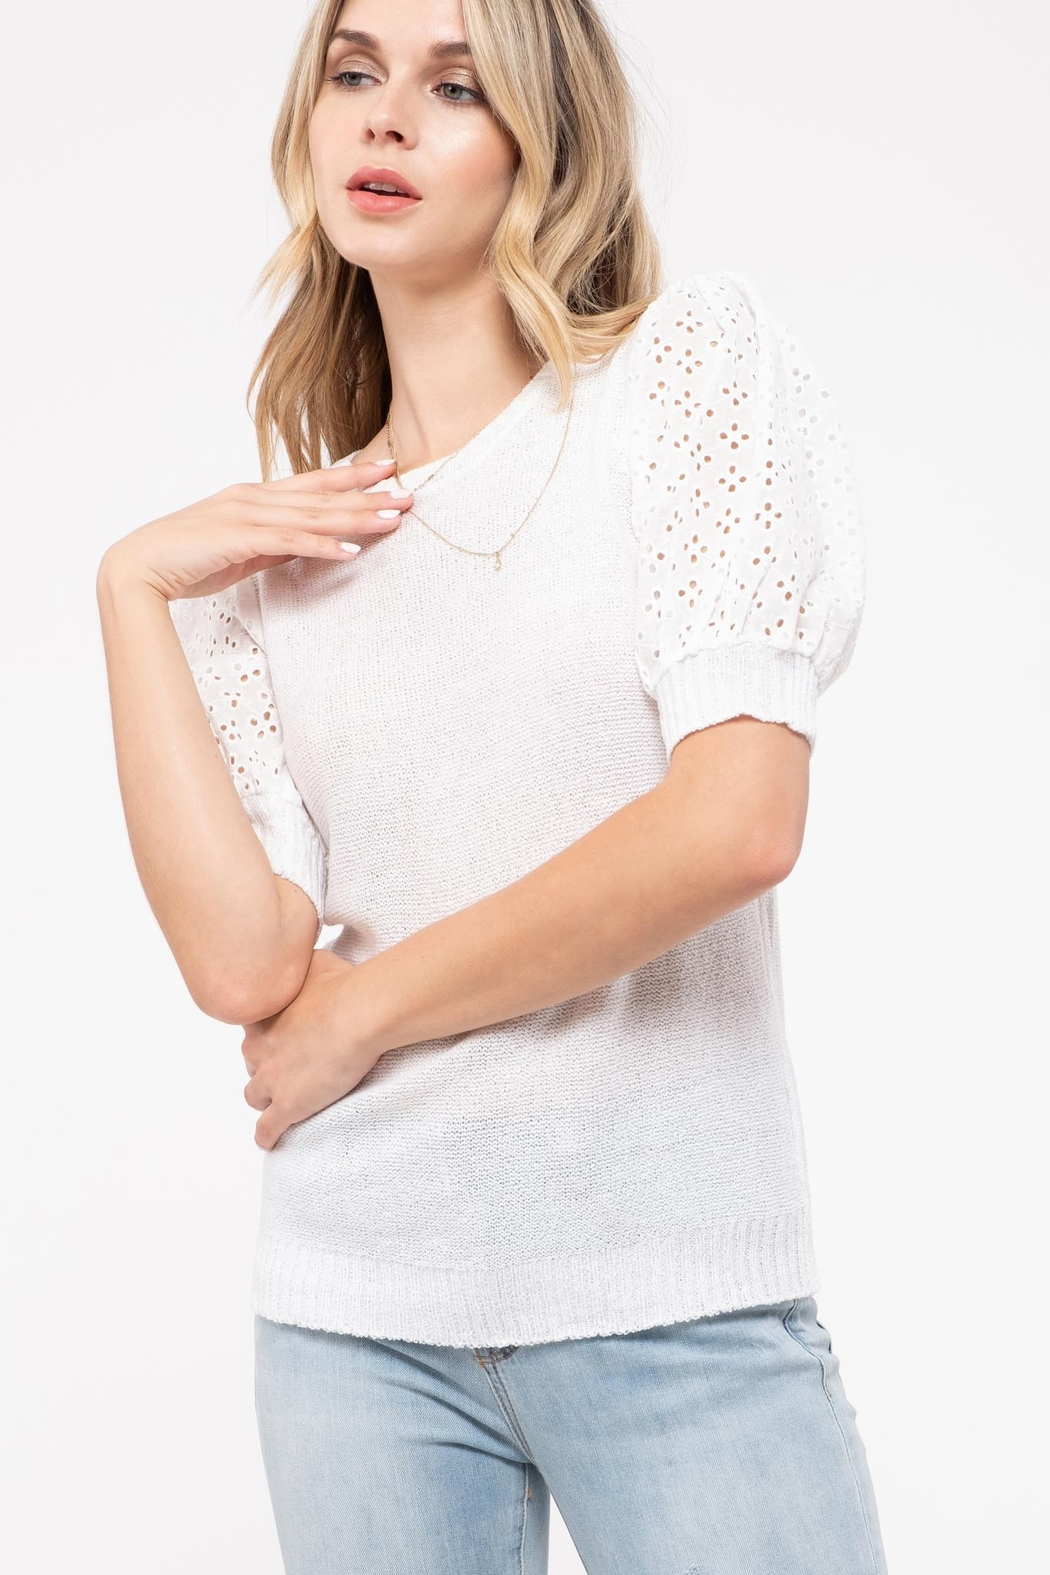 blu Pepper  Contrast Sleeve Sweater Top - Side Cropped Image